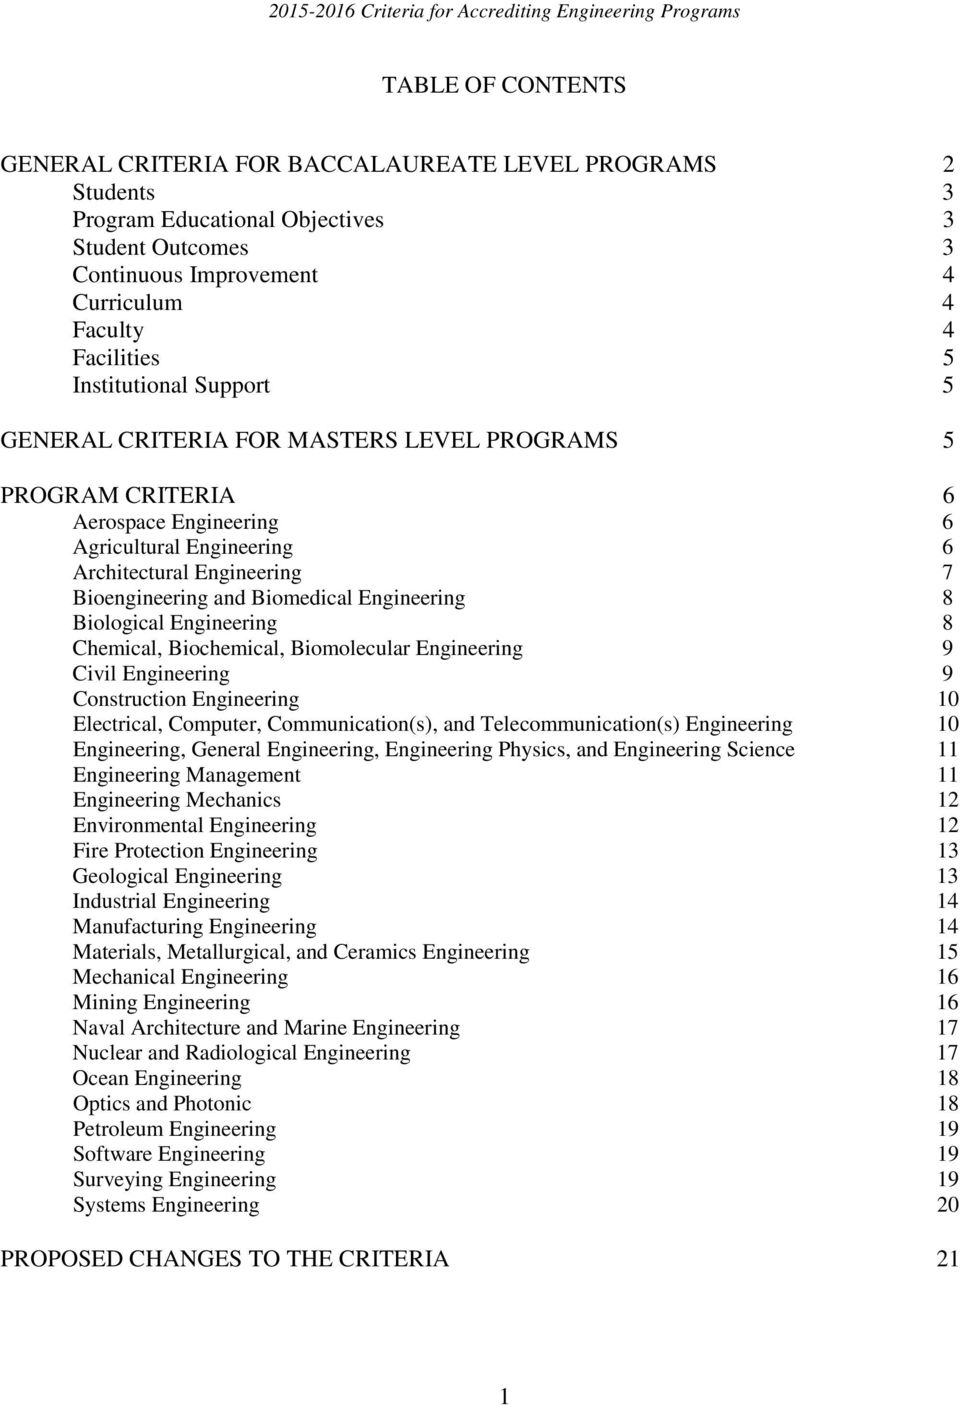 Engineering 8 Biological Engineering 8 Chemical, Biochemical, Biomolecular Engineering 9 Civil Engineering 9 Construction Engineering 10 Electrical, Computer, Communication(s), and